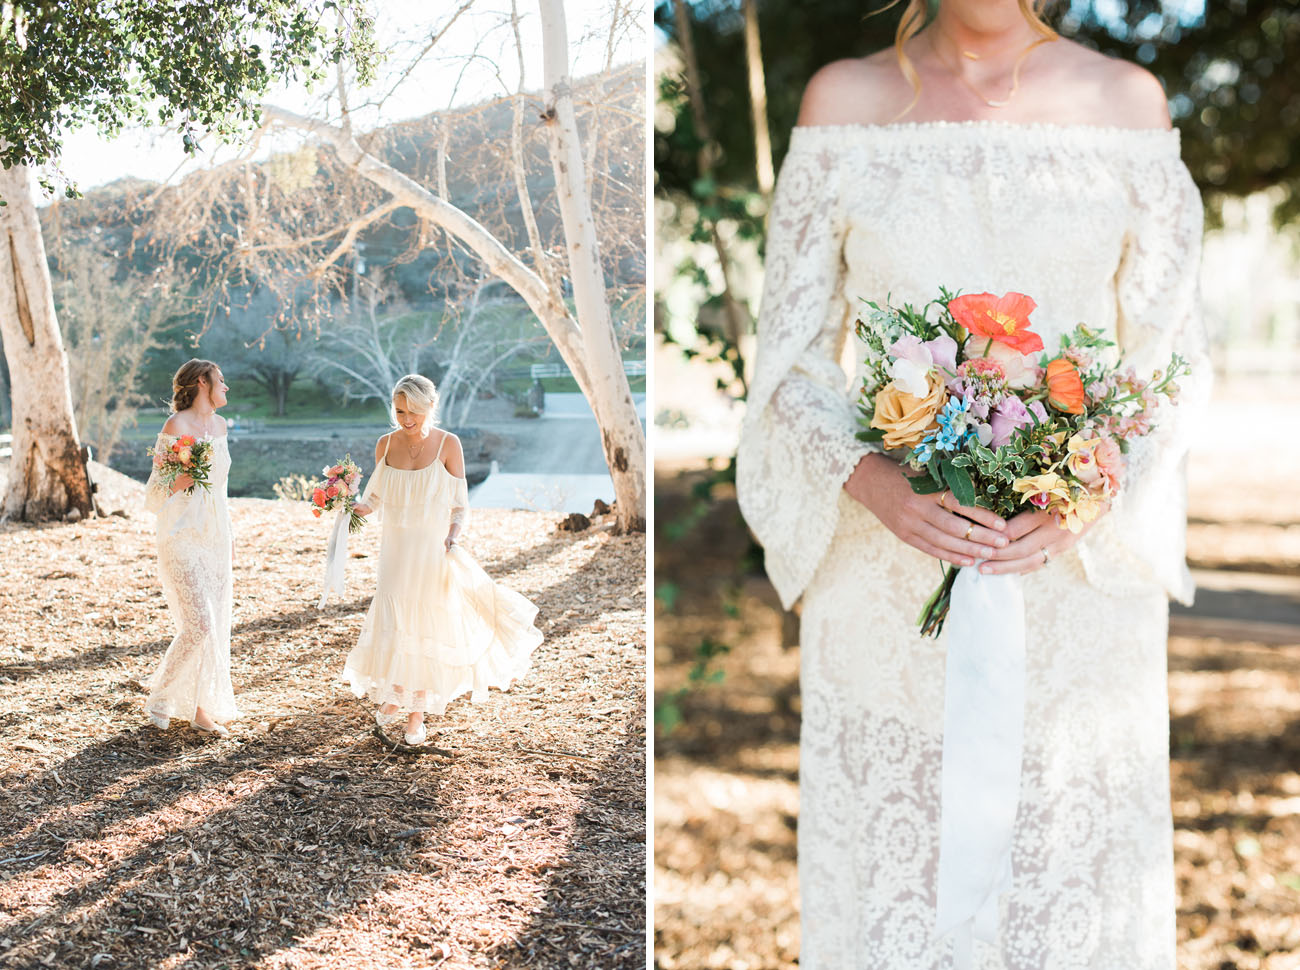 Dreamers & Lovers wedding dress